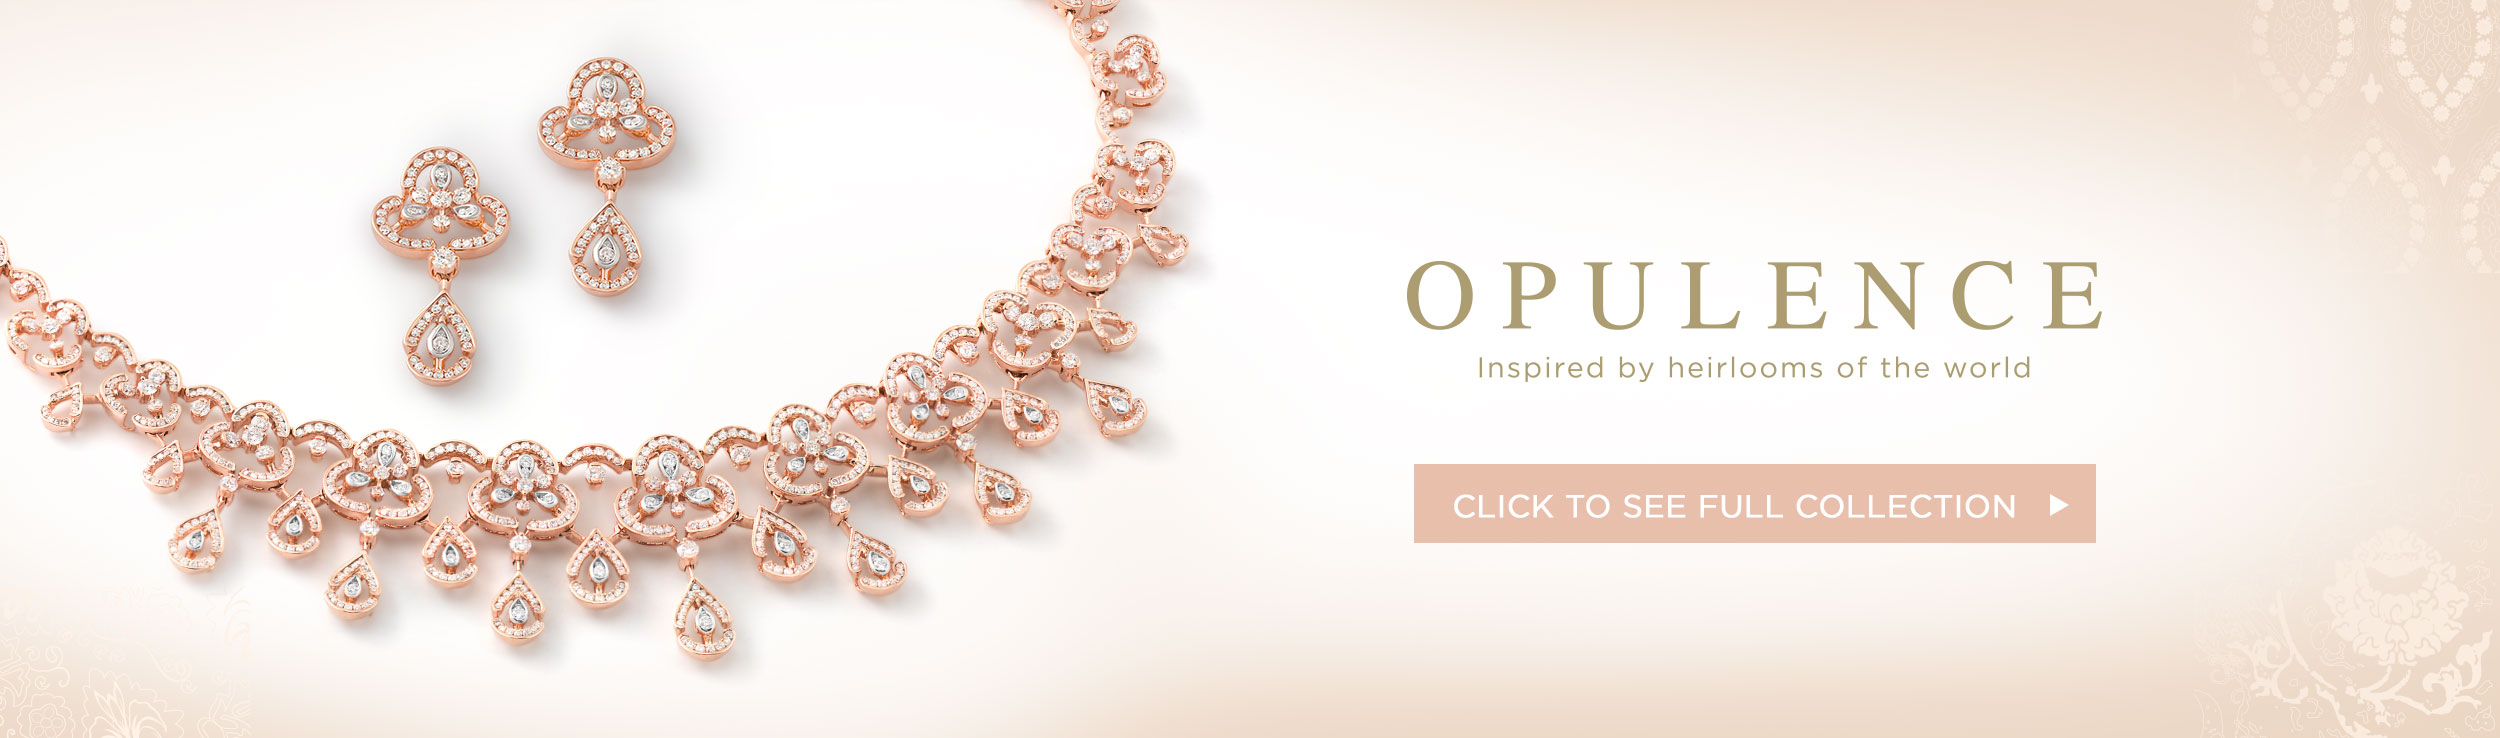 opulence-collection